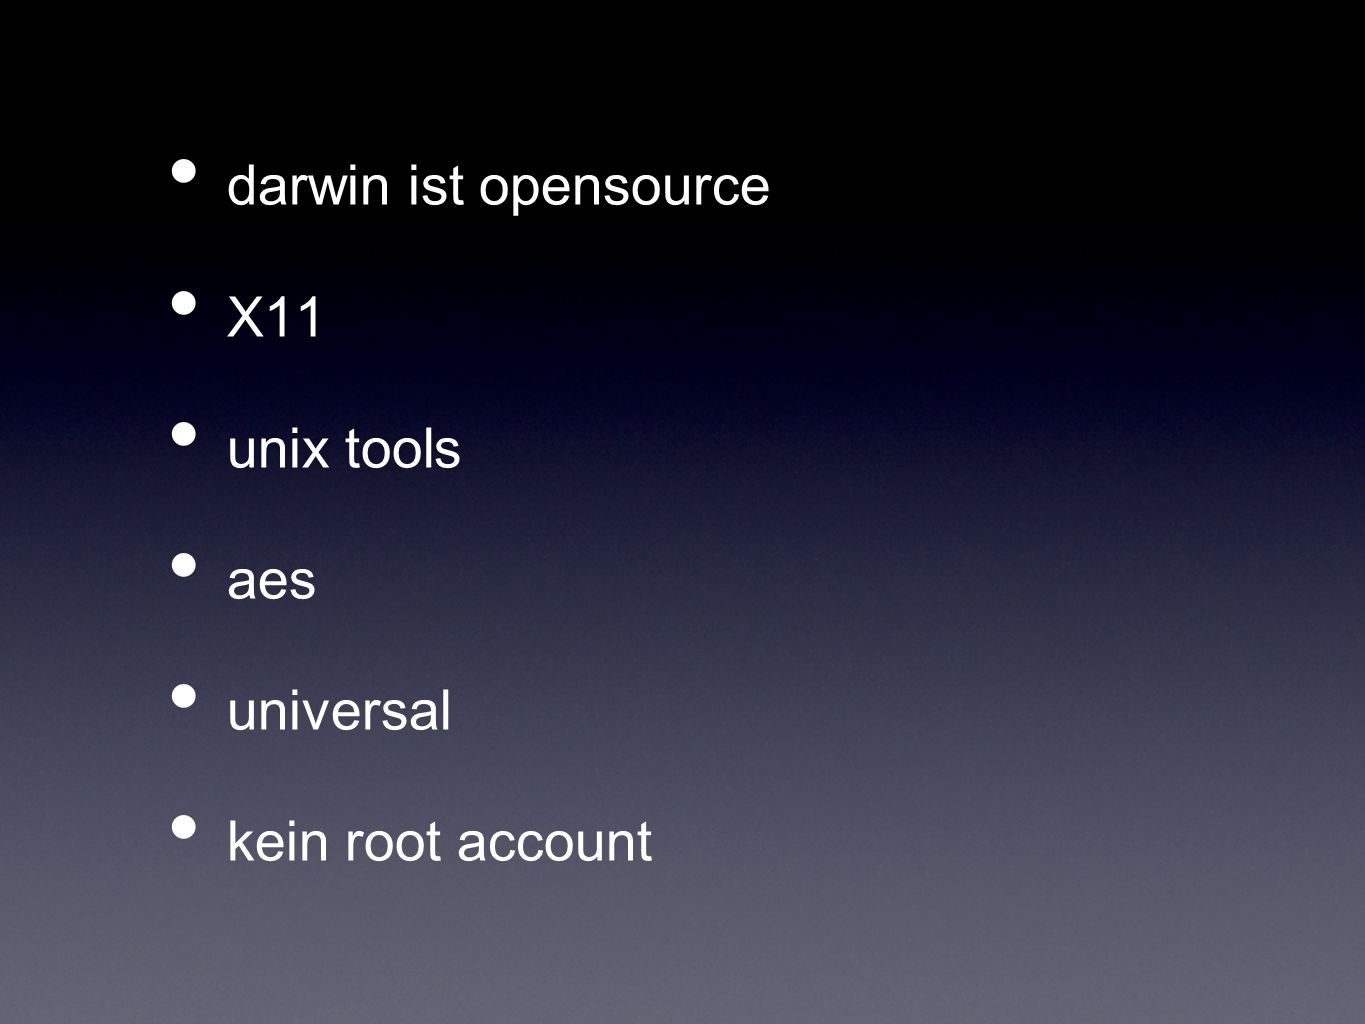 darwin ist opensource X11 unix tools aes universal kein root account